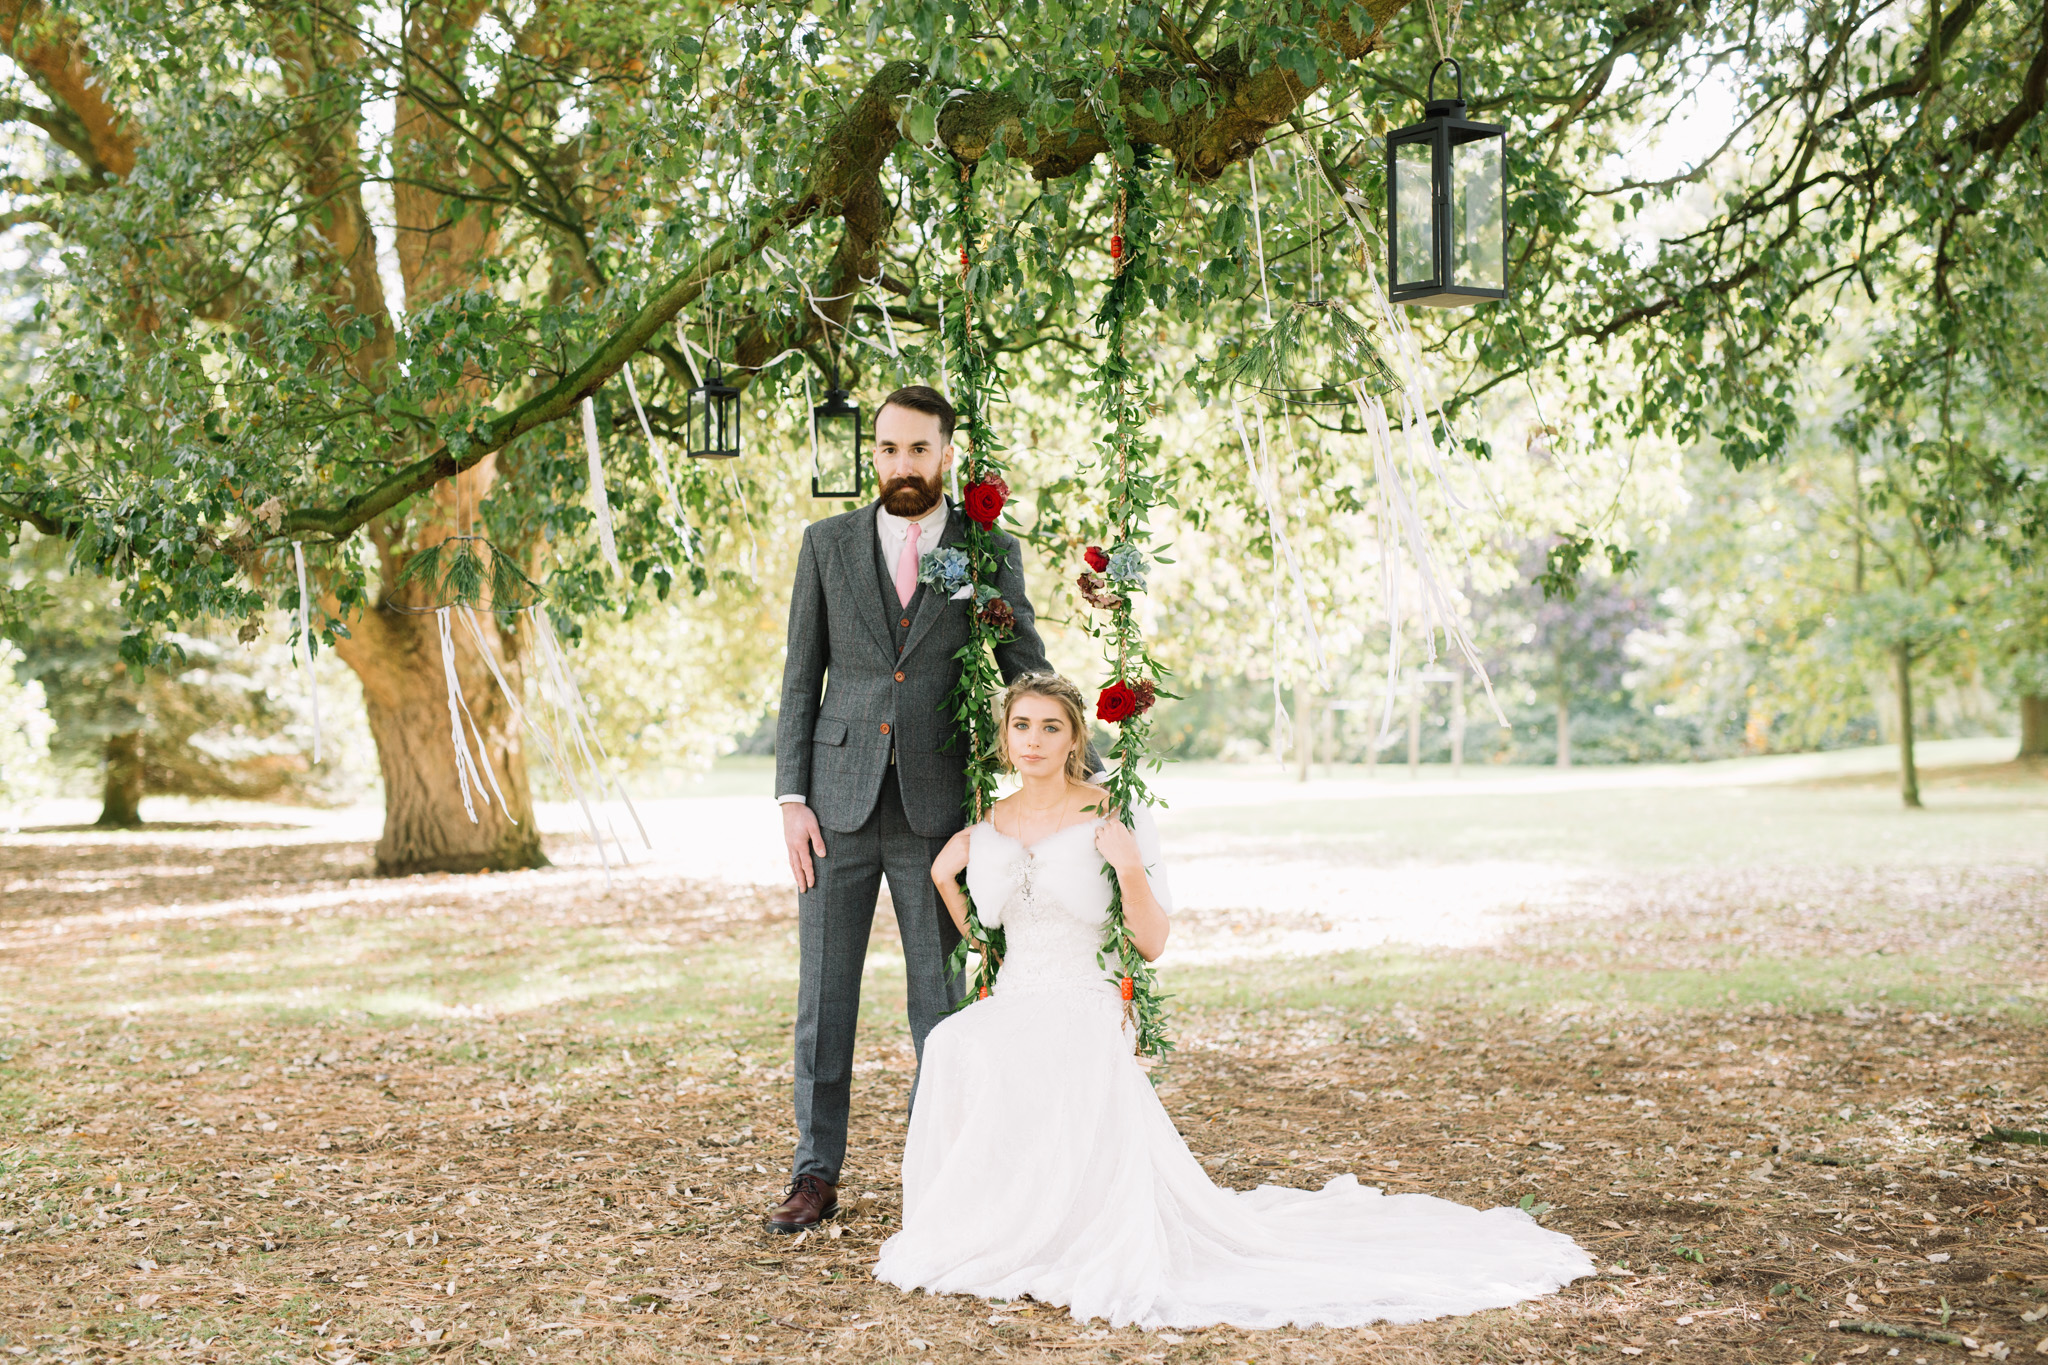 A Woodland Wonderland Wedding Journey